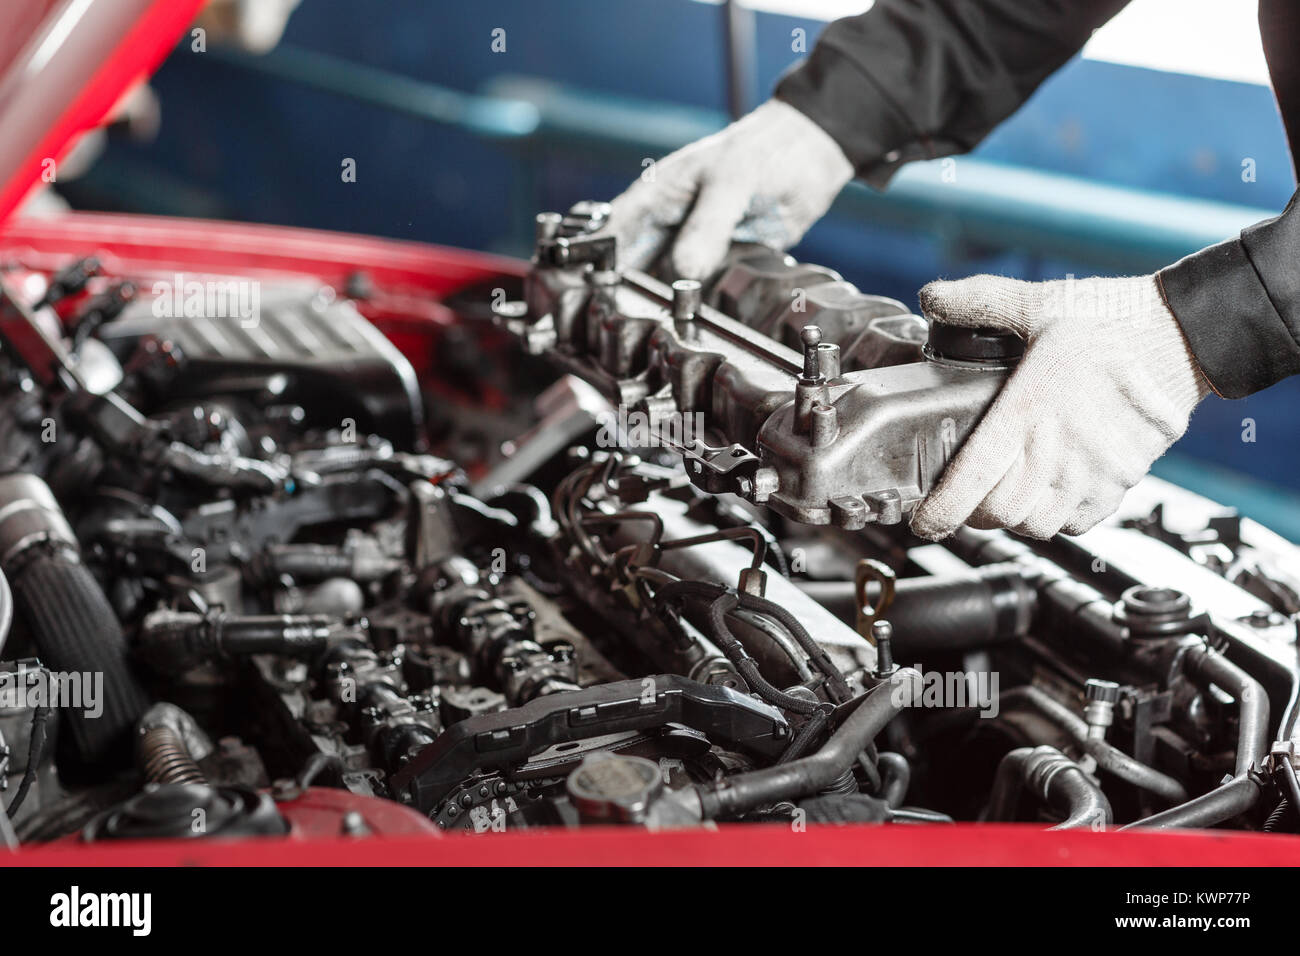 Automotive Repair Stockfotos & Automotive Repair Bilder - Alamy